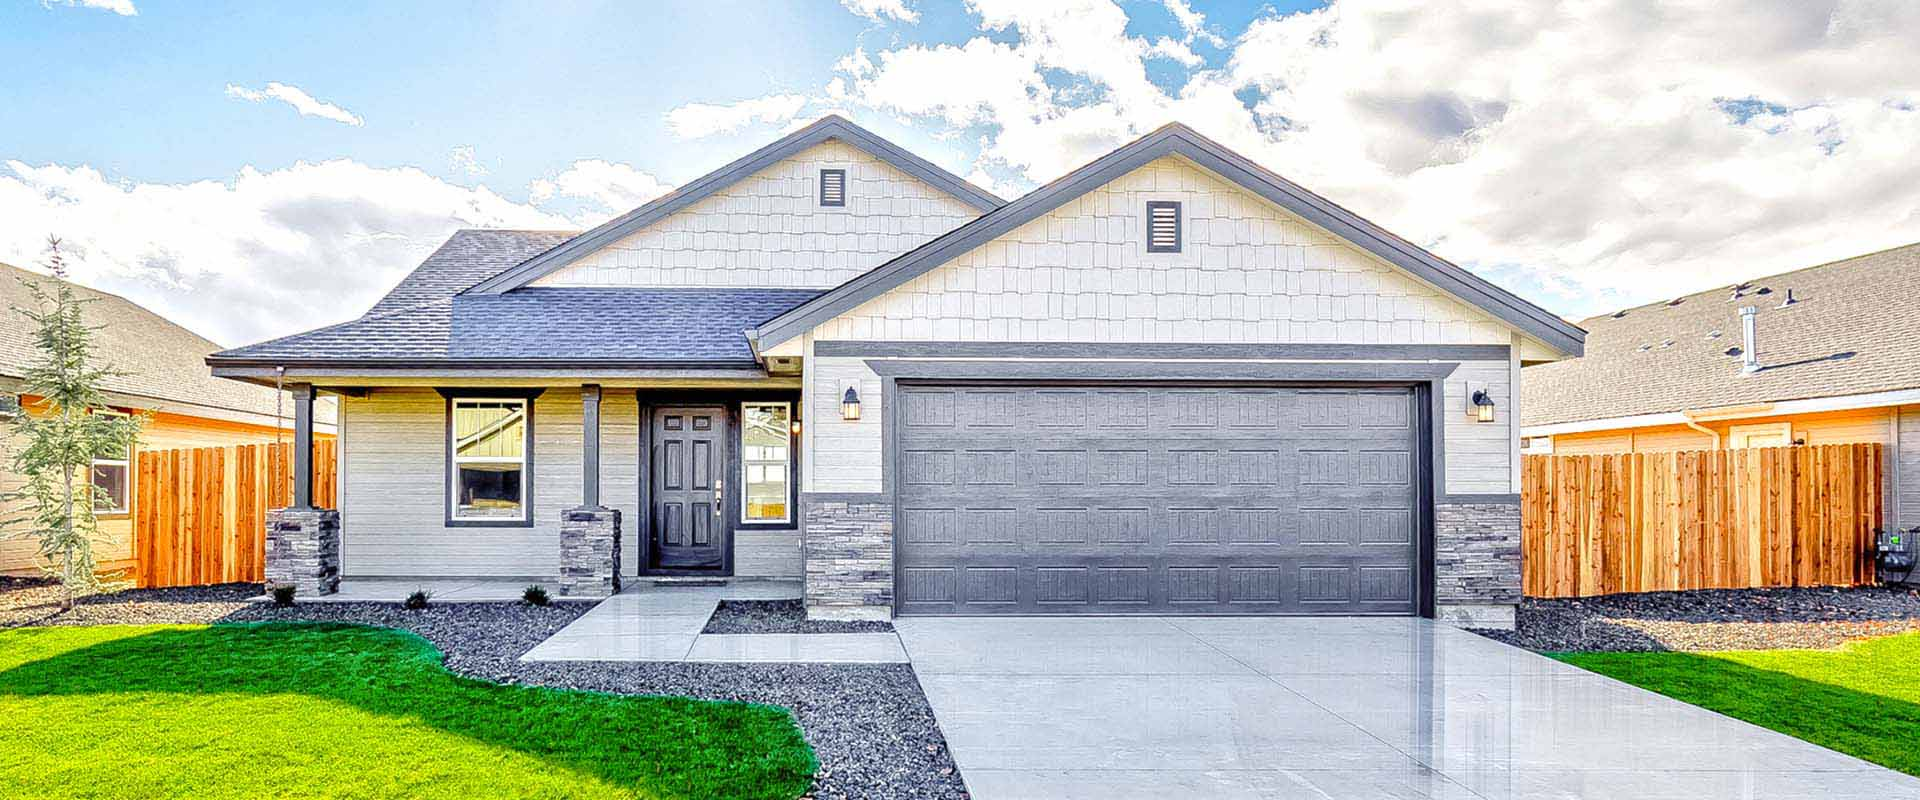 New_Homes_and_Communities_Boise_Idaho_Hubble_Homes_004.jpg